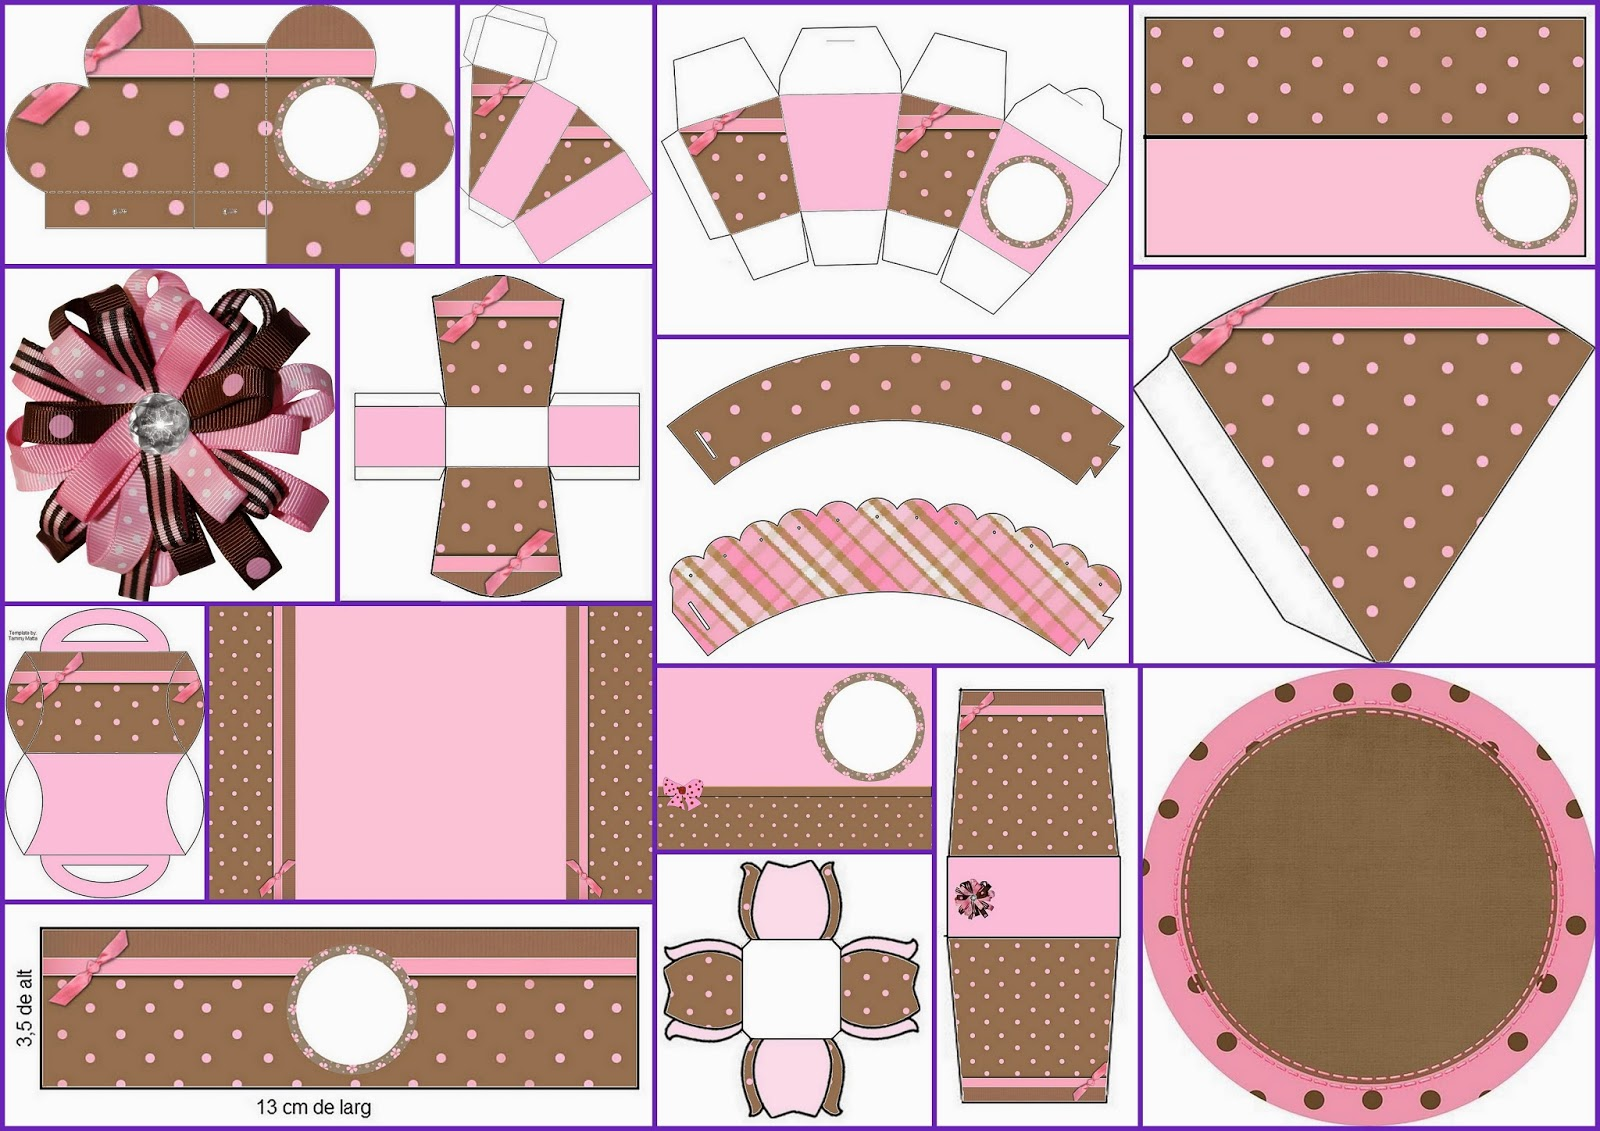 Pink and Brown with Polka Dots Free Printable Quinceanera Party Kit.